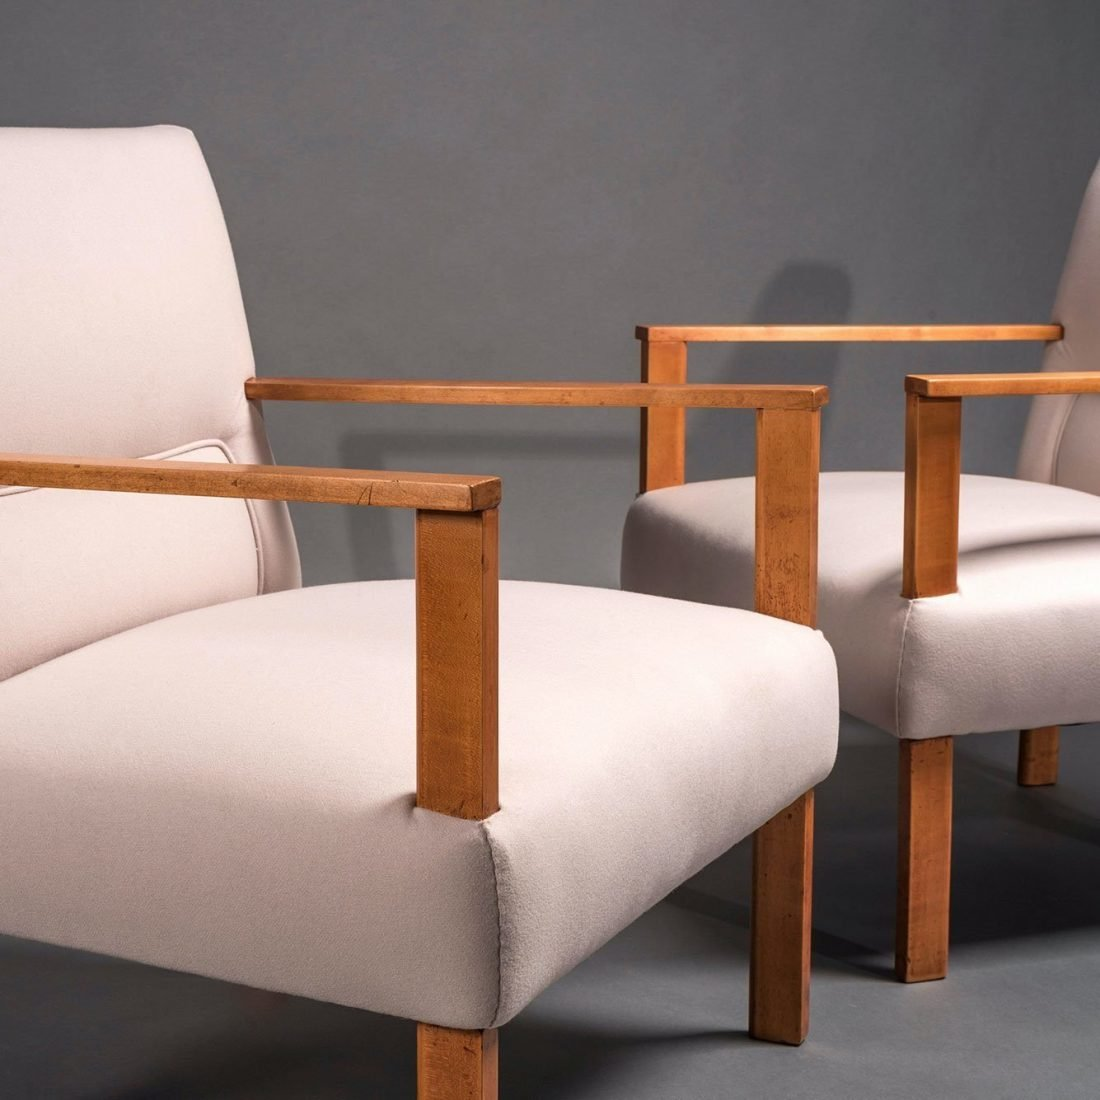 Armchairs by Italian architects Mario Asnago and Claudio Vender at Italian furniture and design gallery Casati Gallery